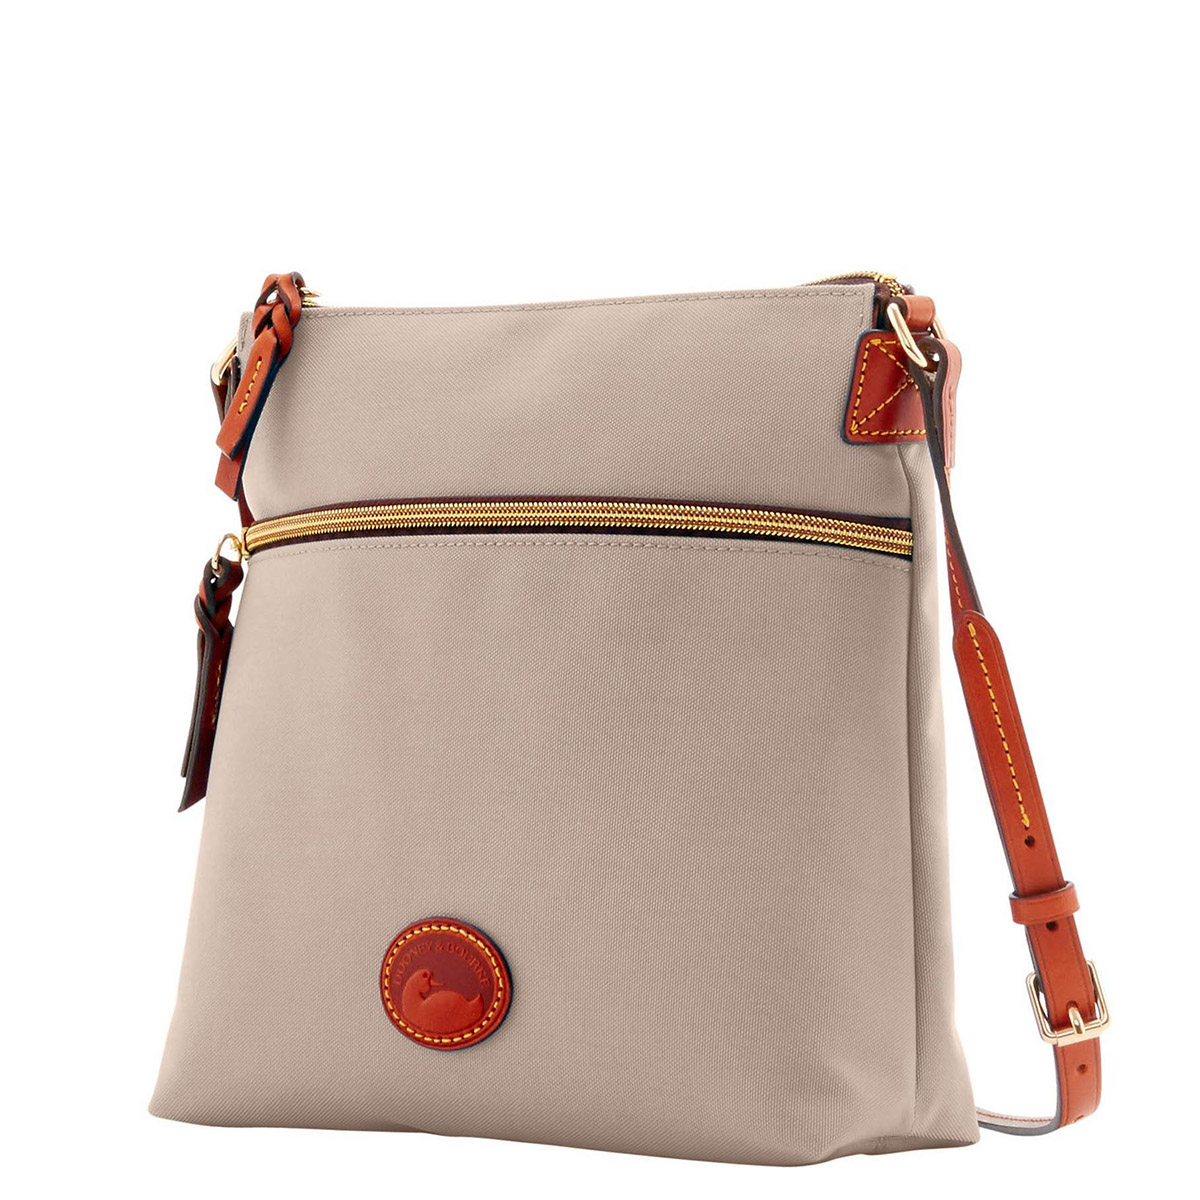 Dooney & Bourke Crossbody Bag - Generously provided by D&B, this classic crossbody bag is made of durable nylon and features leather trim. Casual and versatile!Retail Value $129.00